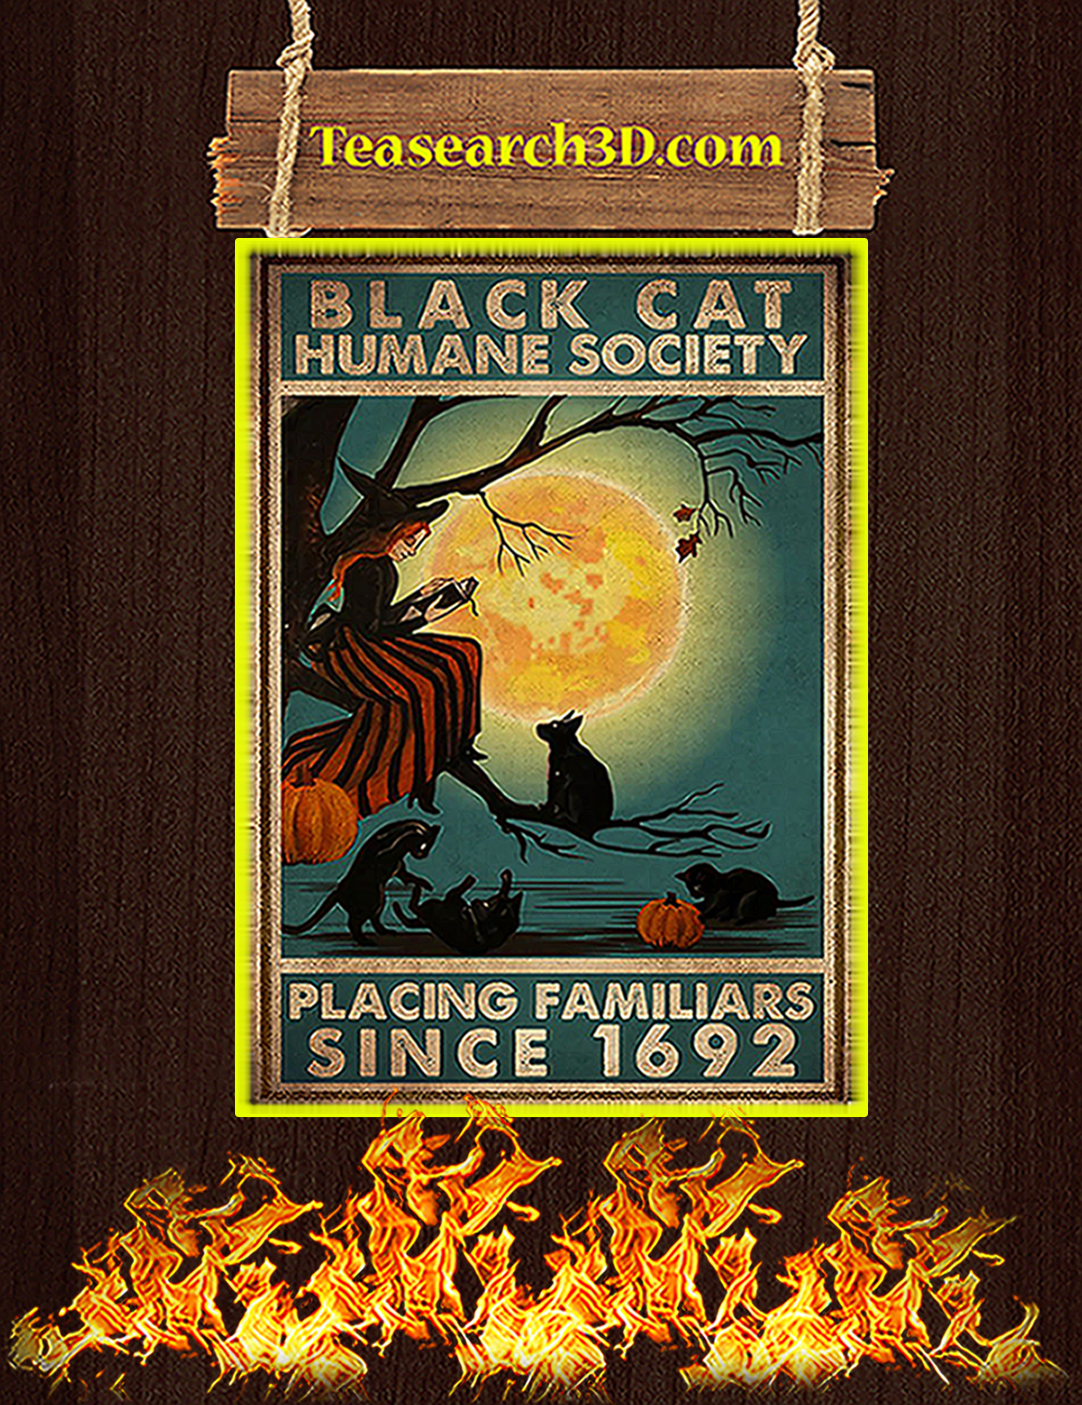 Black cat humane society placing familiars since 1962 poster A2